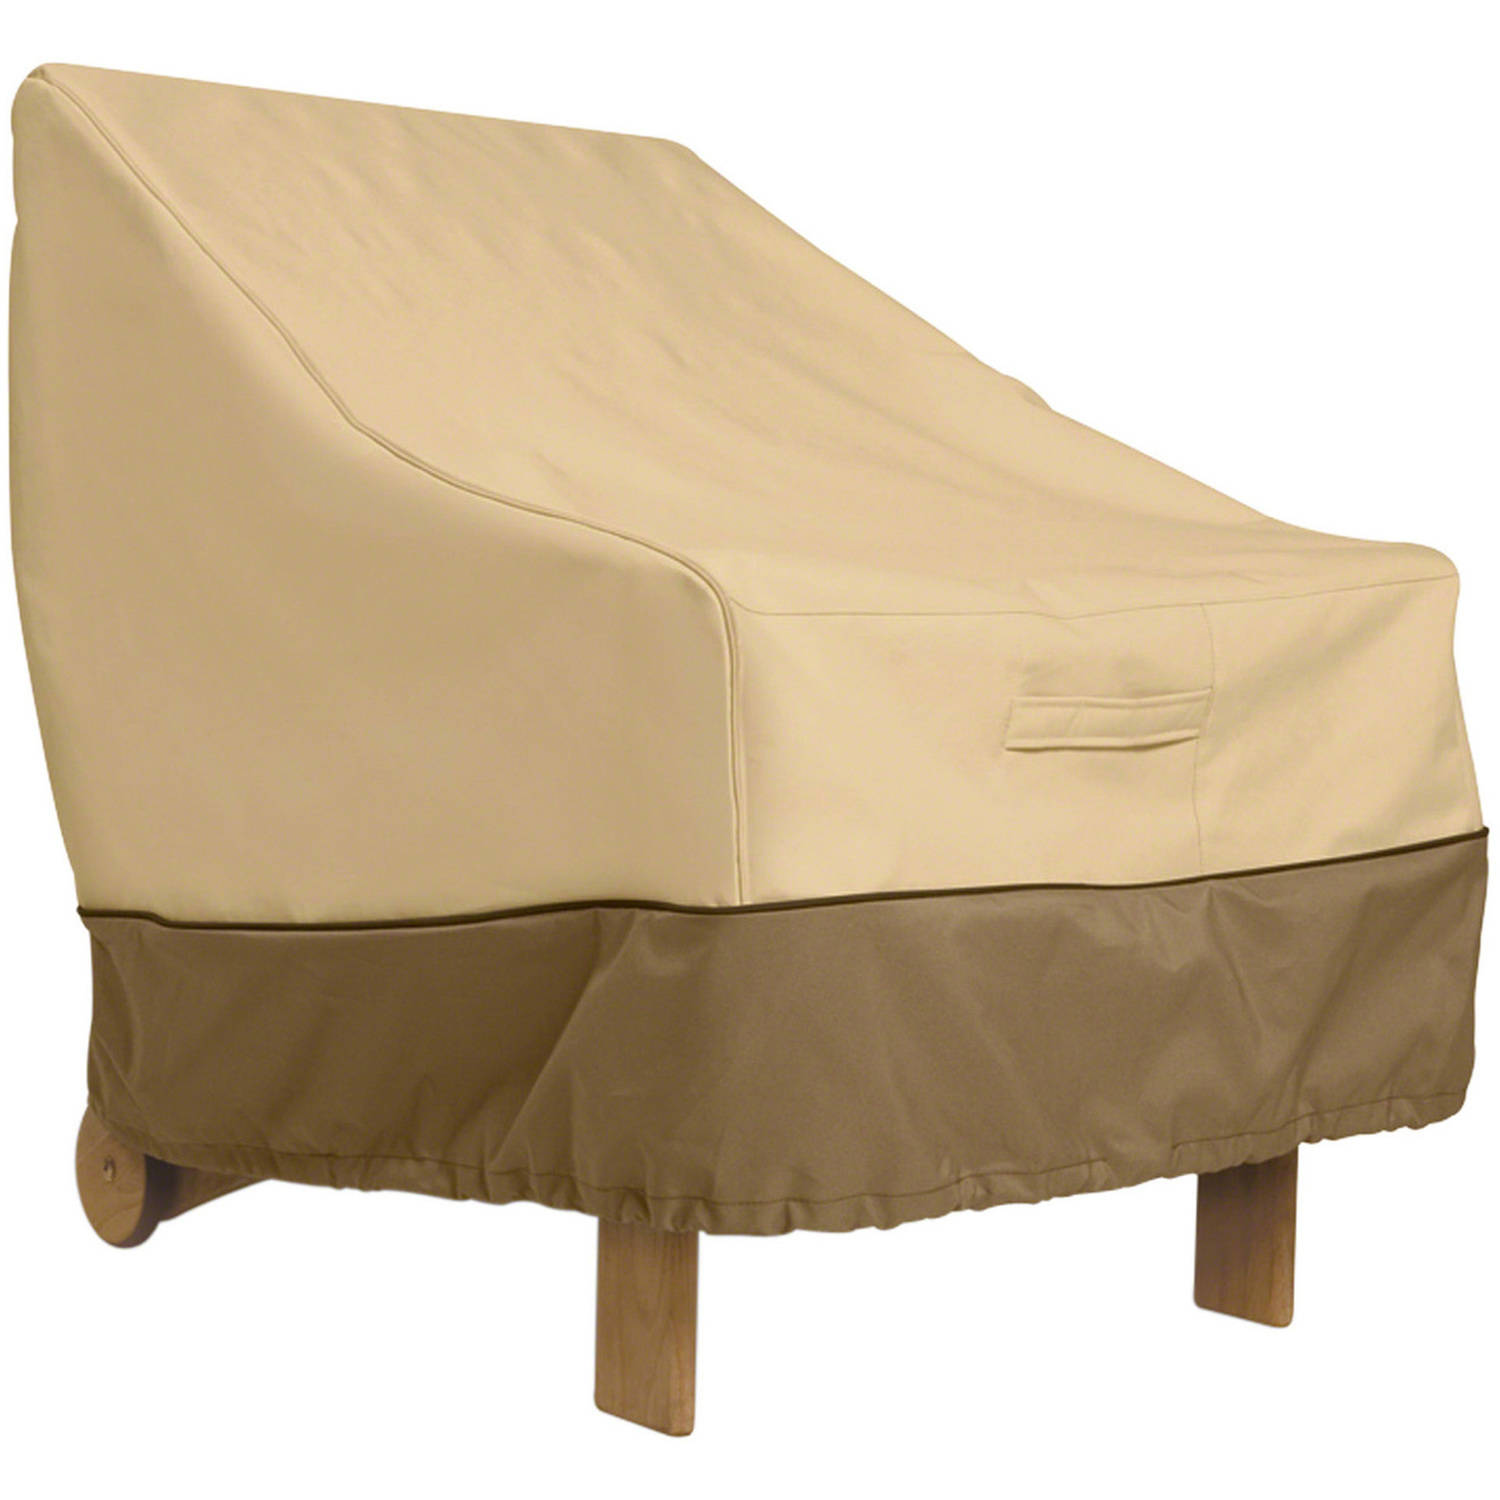 Classic Accessories Veranda Adirondack Patio Chair Cover - Durable and Water Resistant